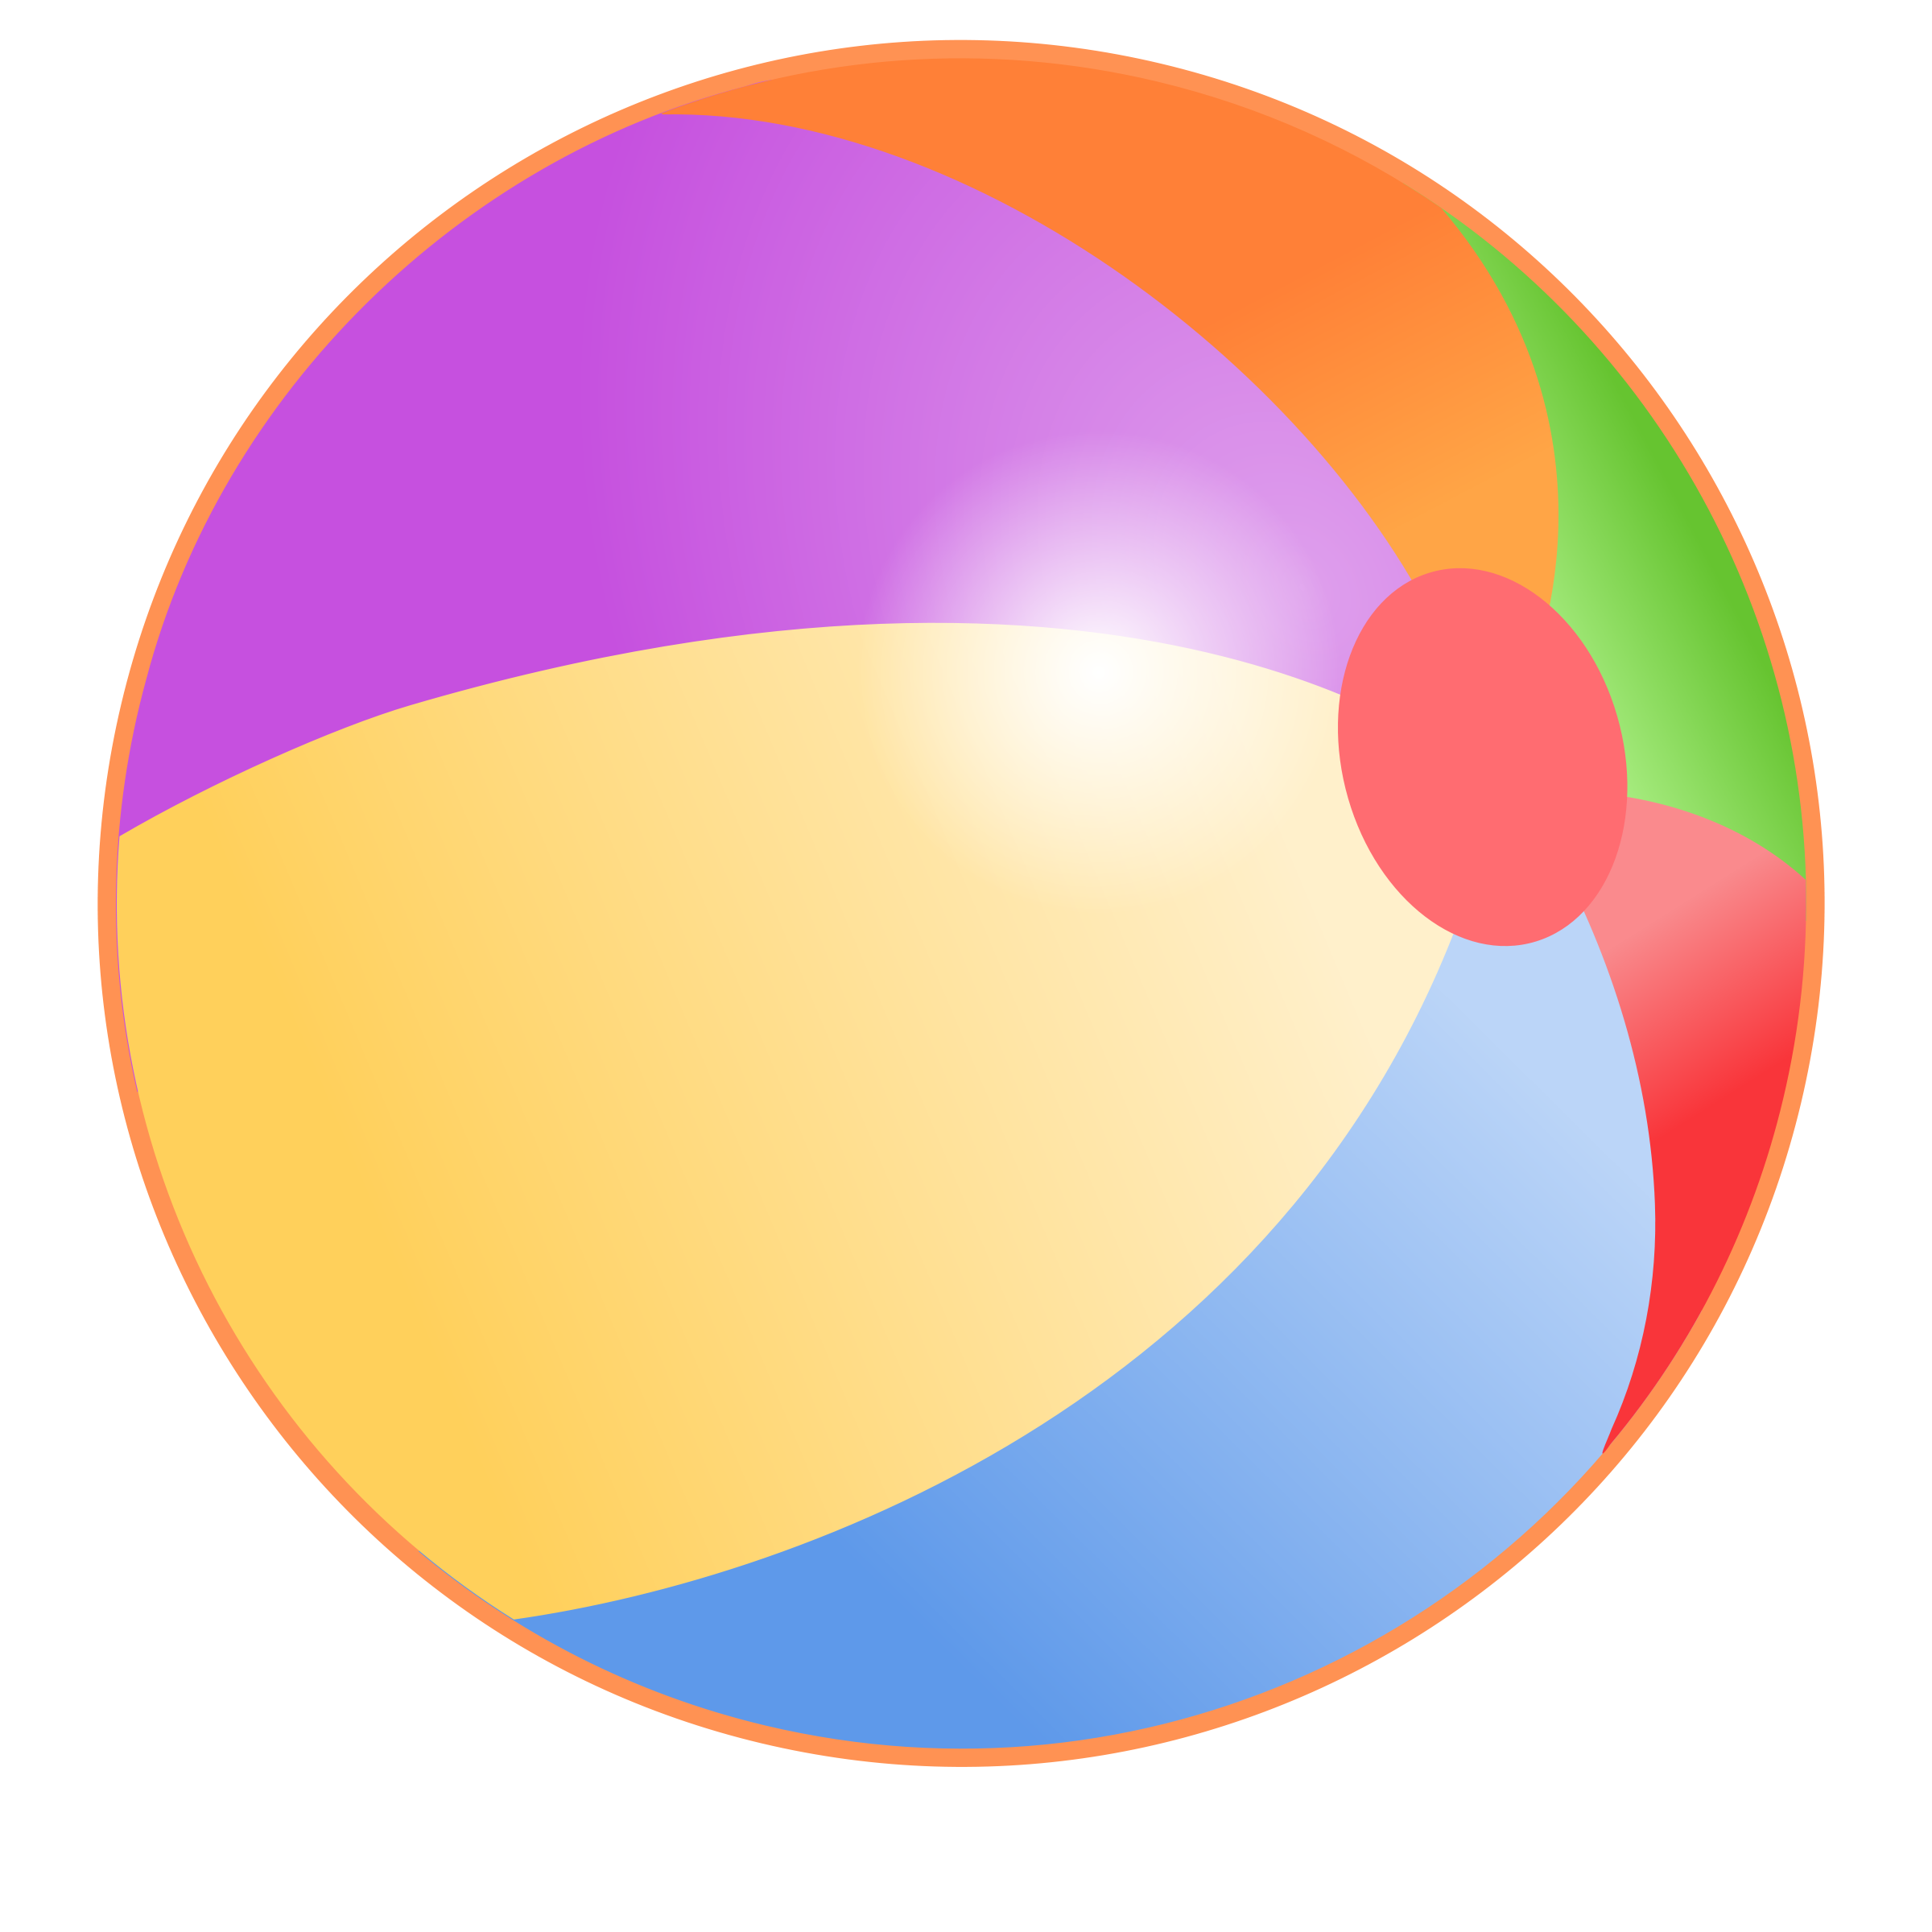 Beach games png. Ball transparent images all